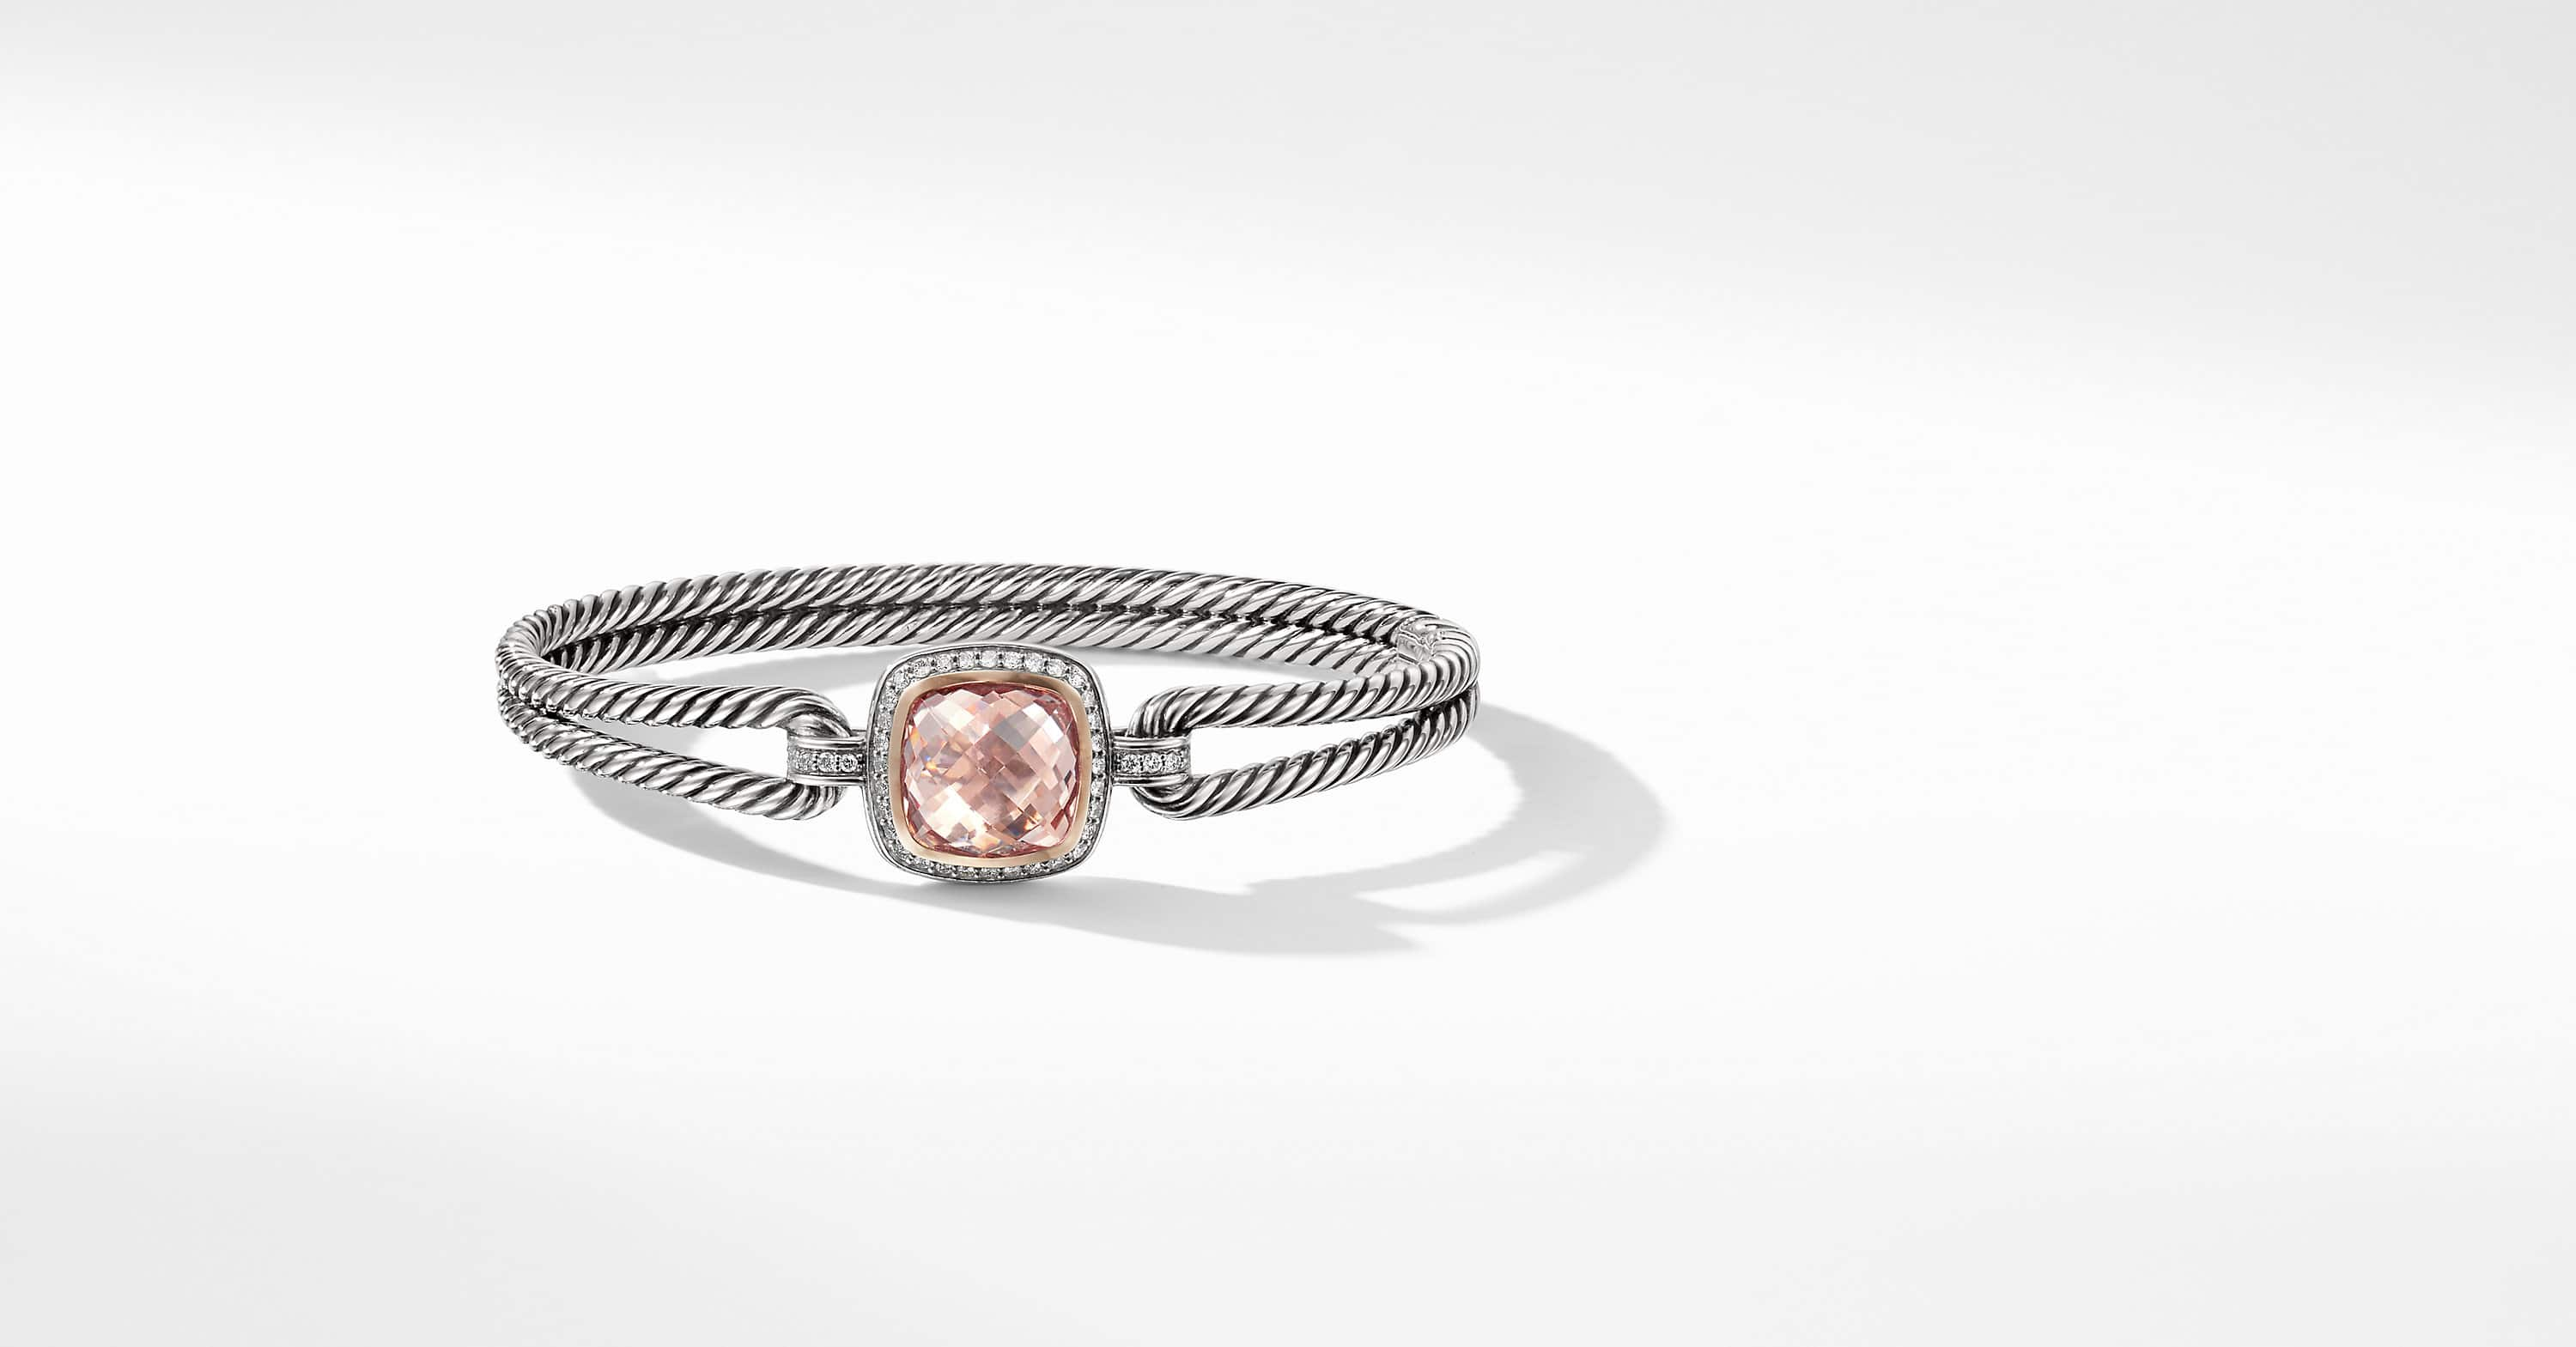 Albion Bracelet with 18K Rose Gold and Diamonds